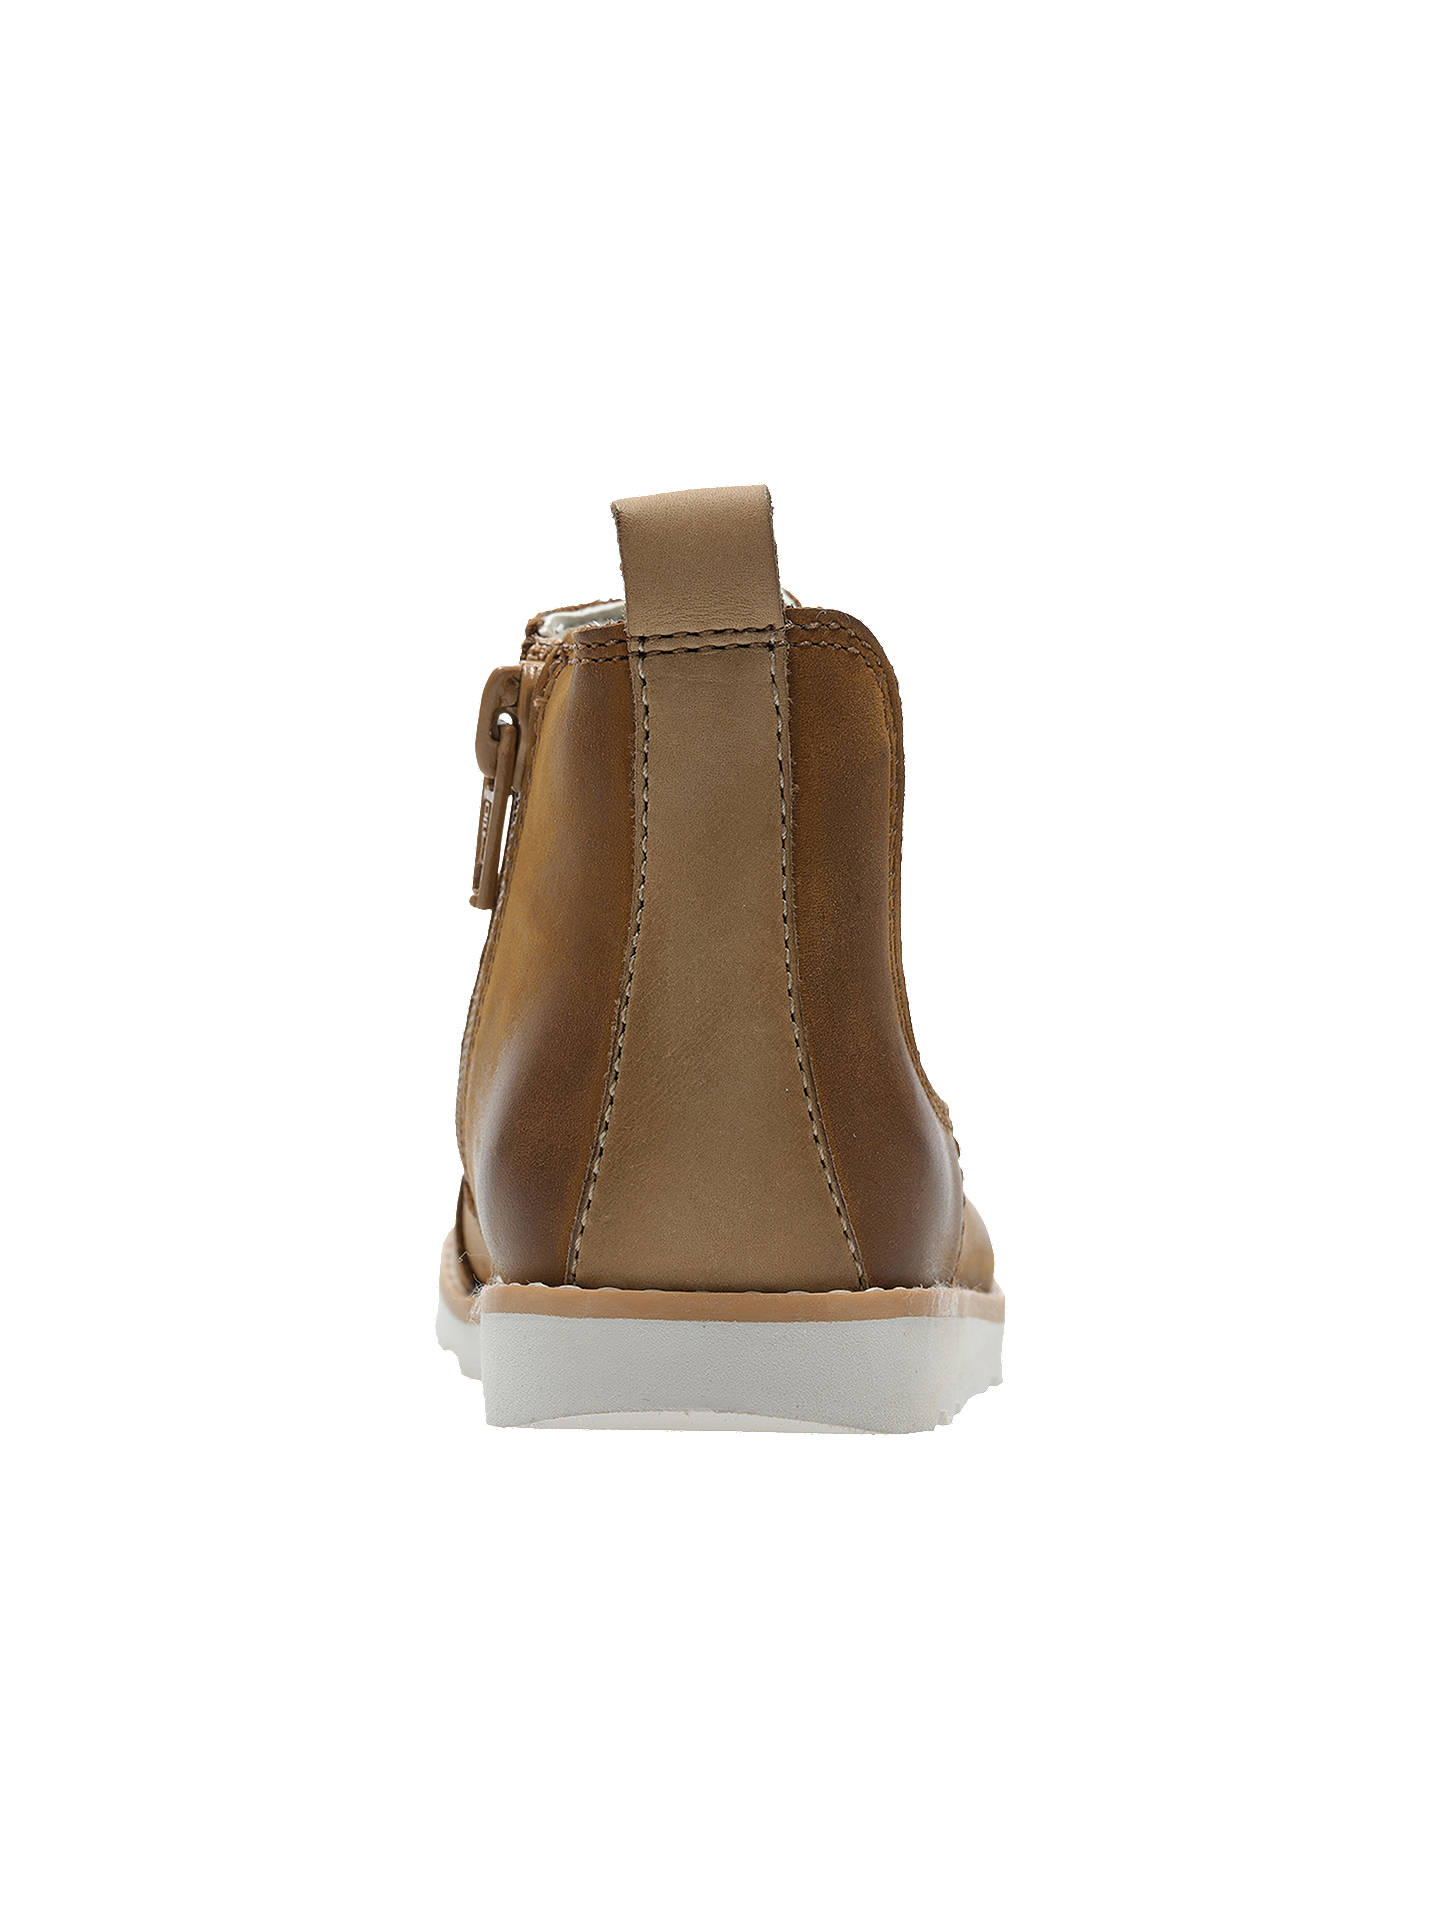 e2e9560e70 ... Buy Clarks Children's Crown Halo Shoes, Tan, 4F Jnr Online at  johnlewis. ...